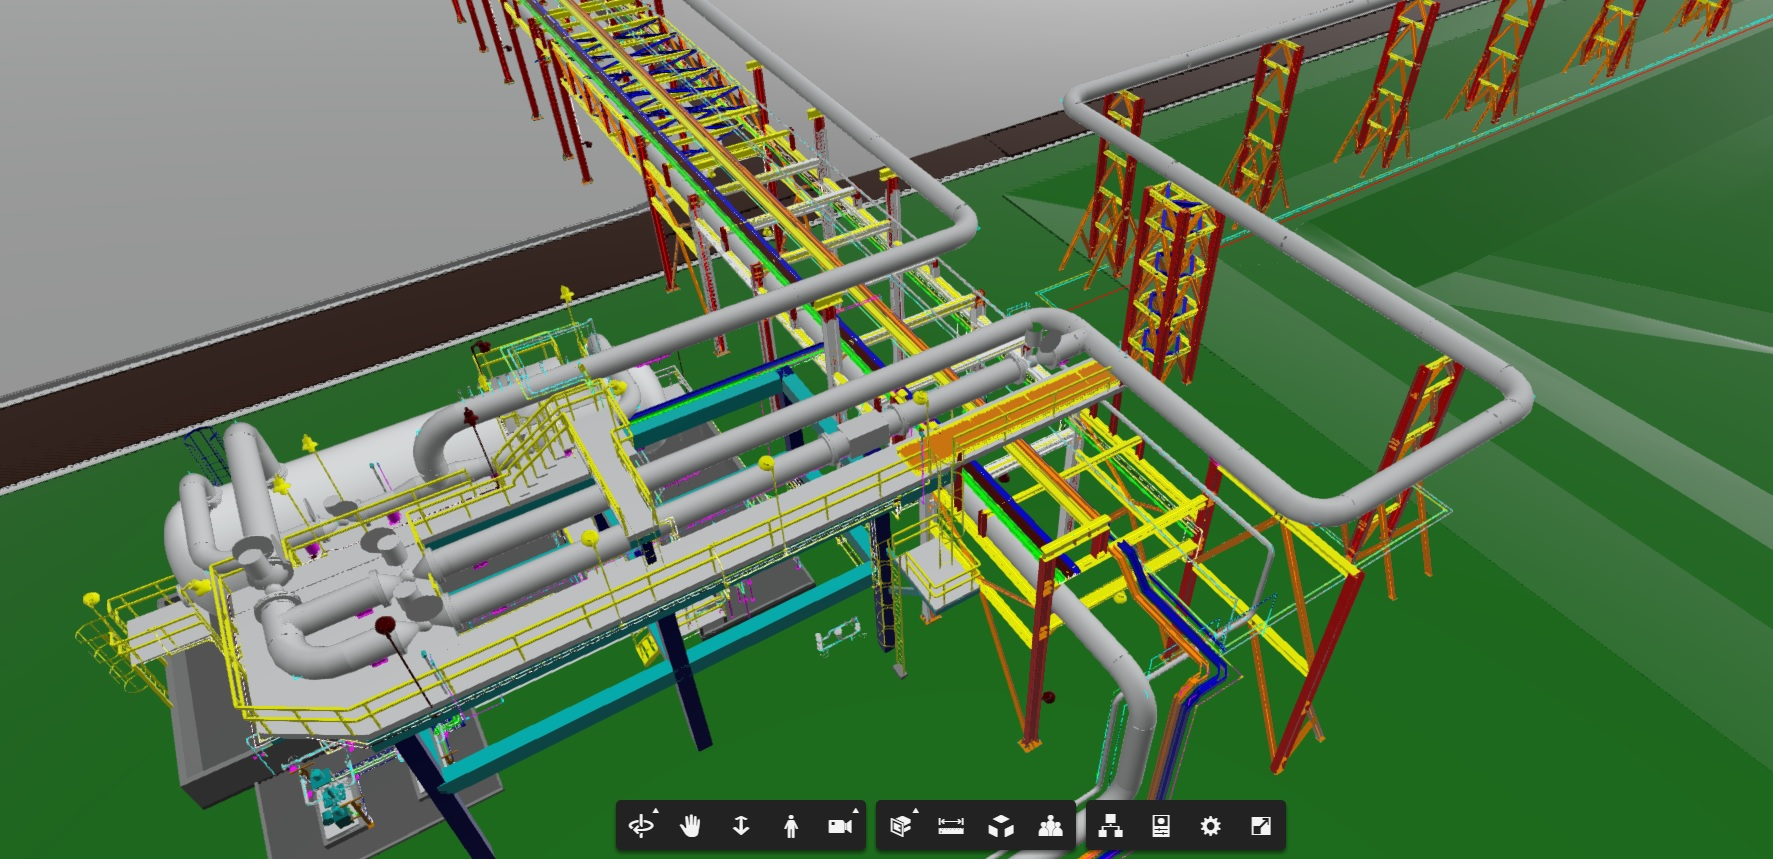 Inspection of a 3D model of an industrial asset